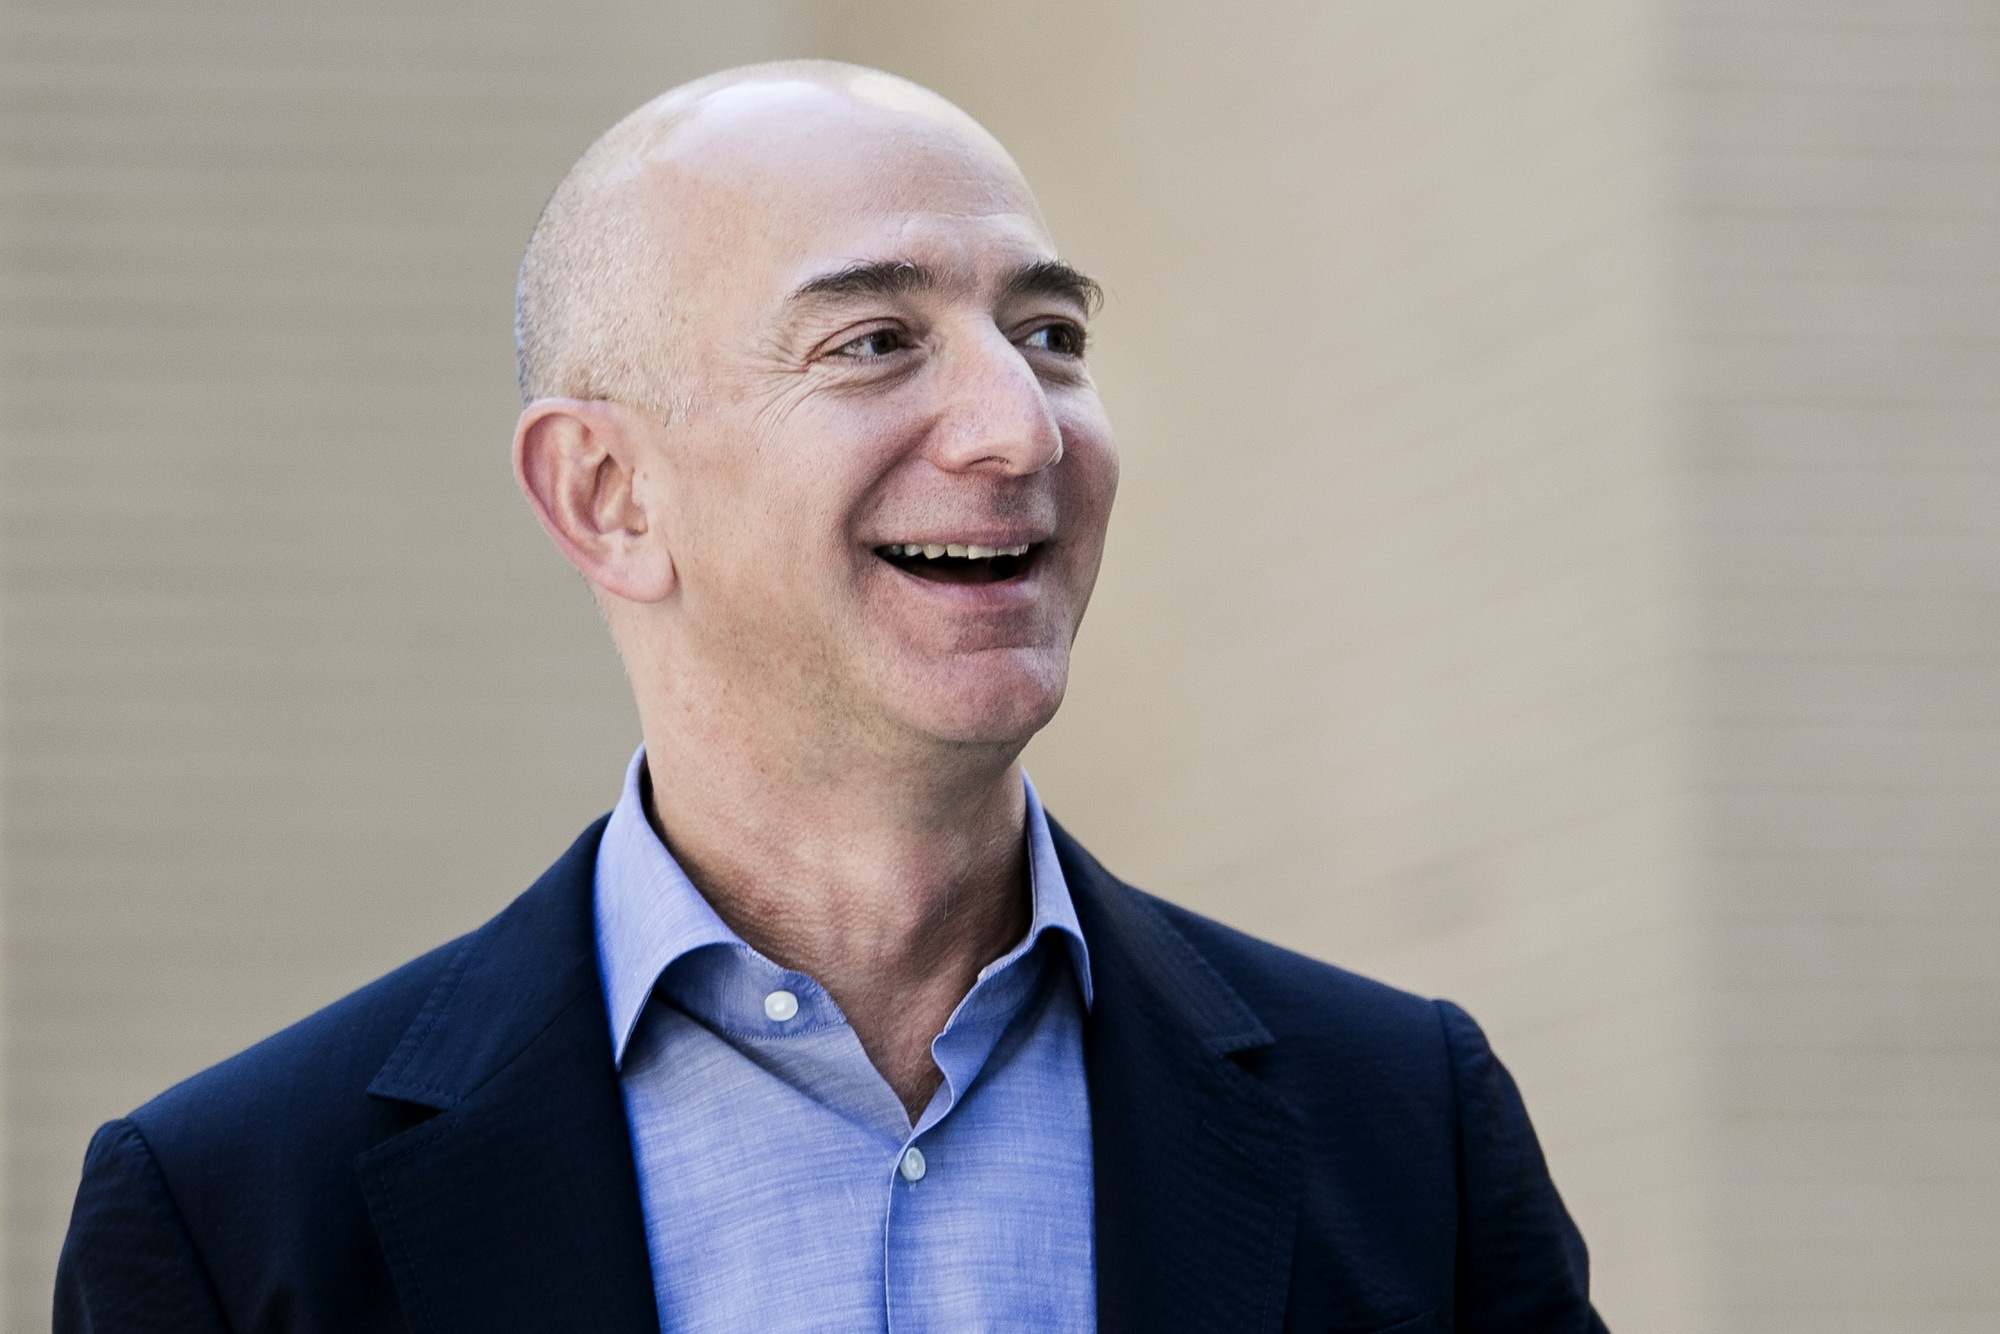 Jeff Bezos Wallpapers Images Photos Pictures Backgrounds